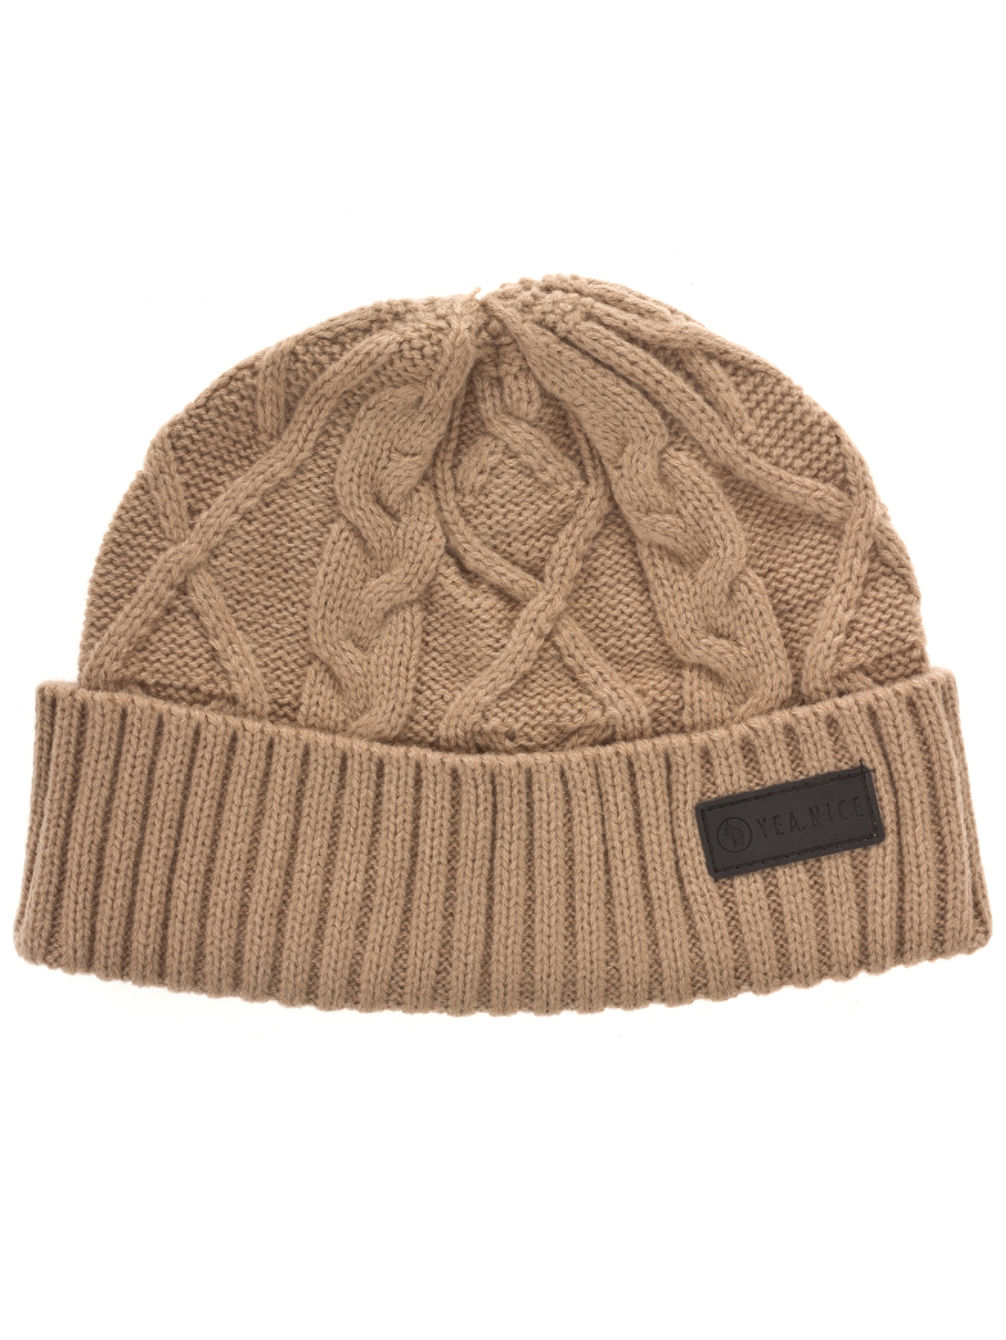 The Cable Beanie